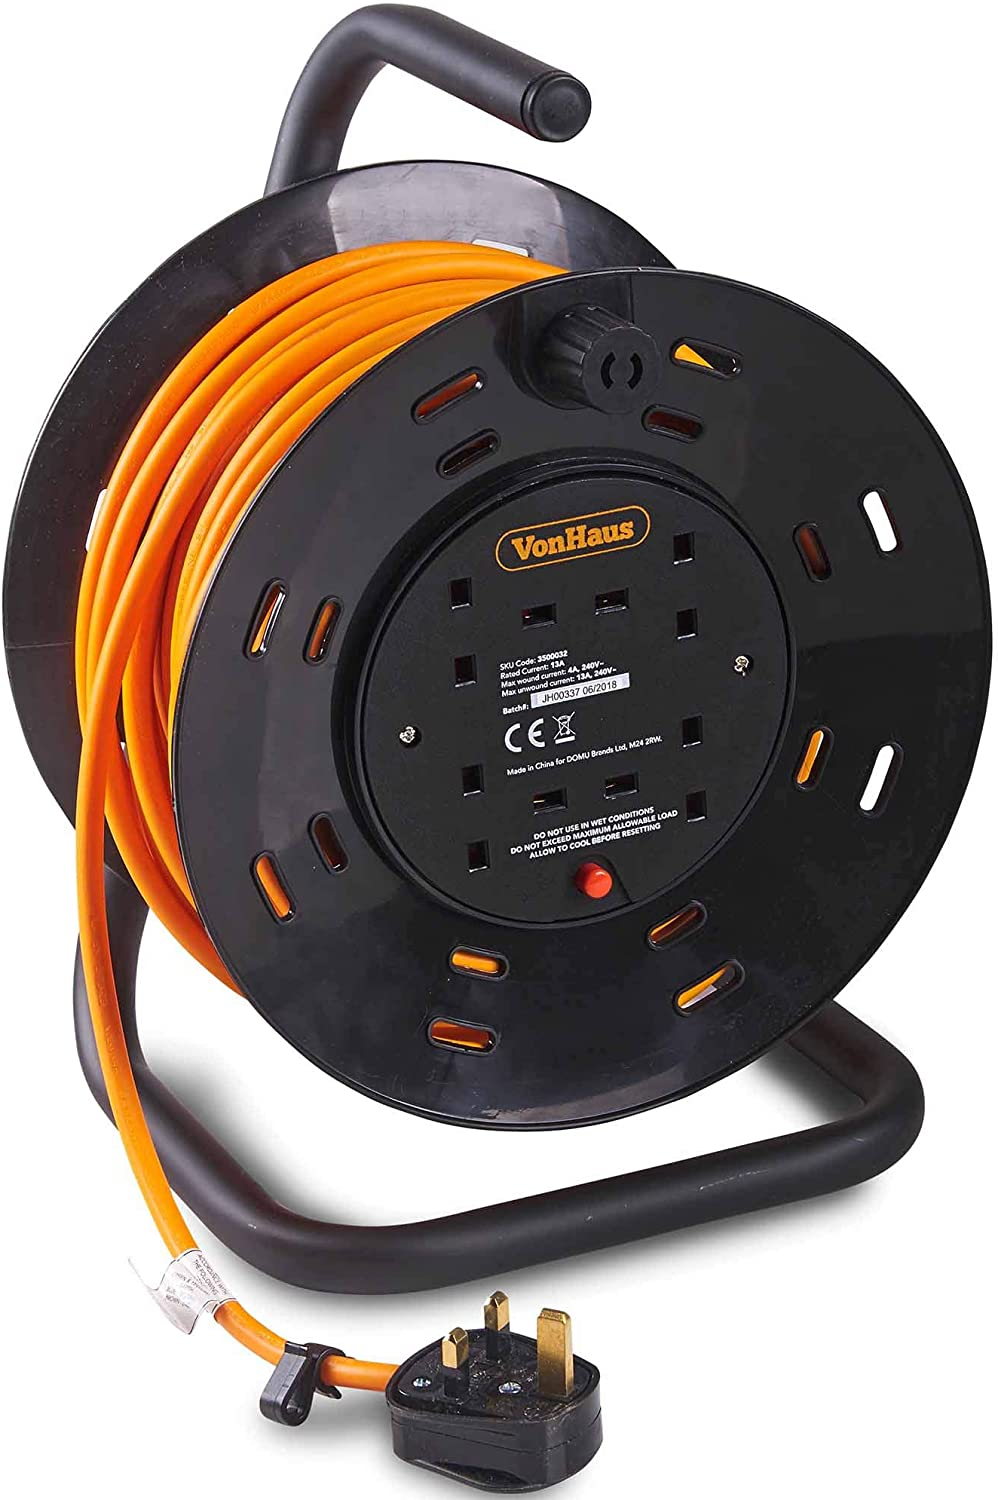 Vonhaus 10 m Câble d/'Extension Reel 4 Way Socket Extension Cable 13 A